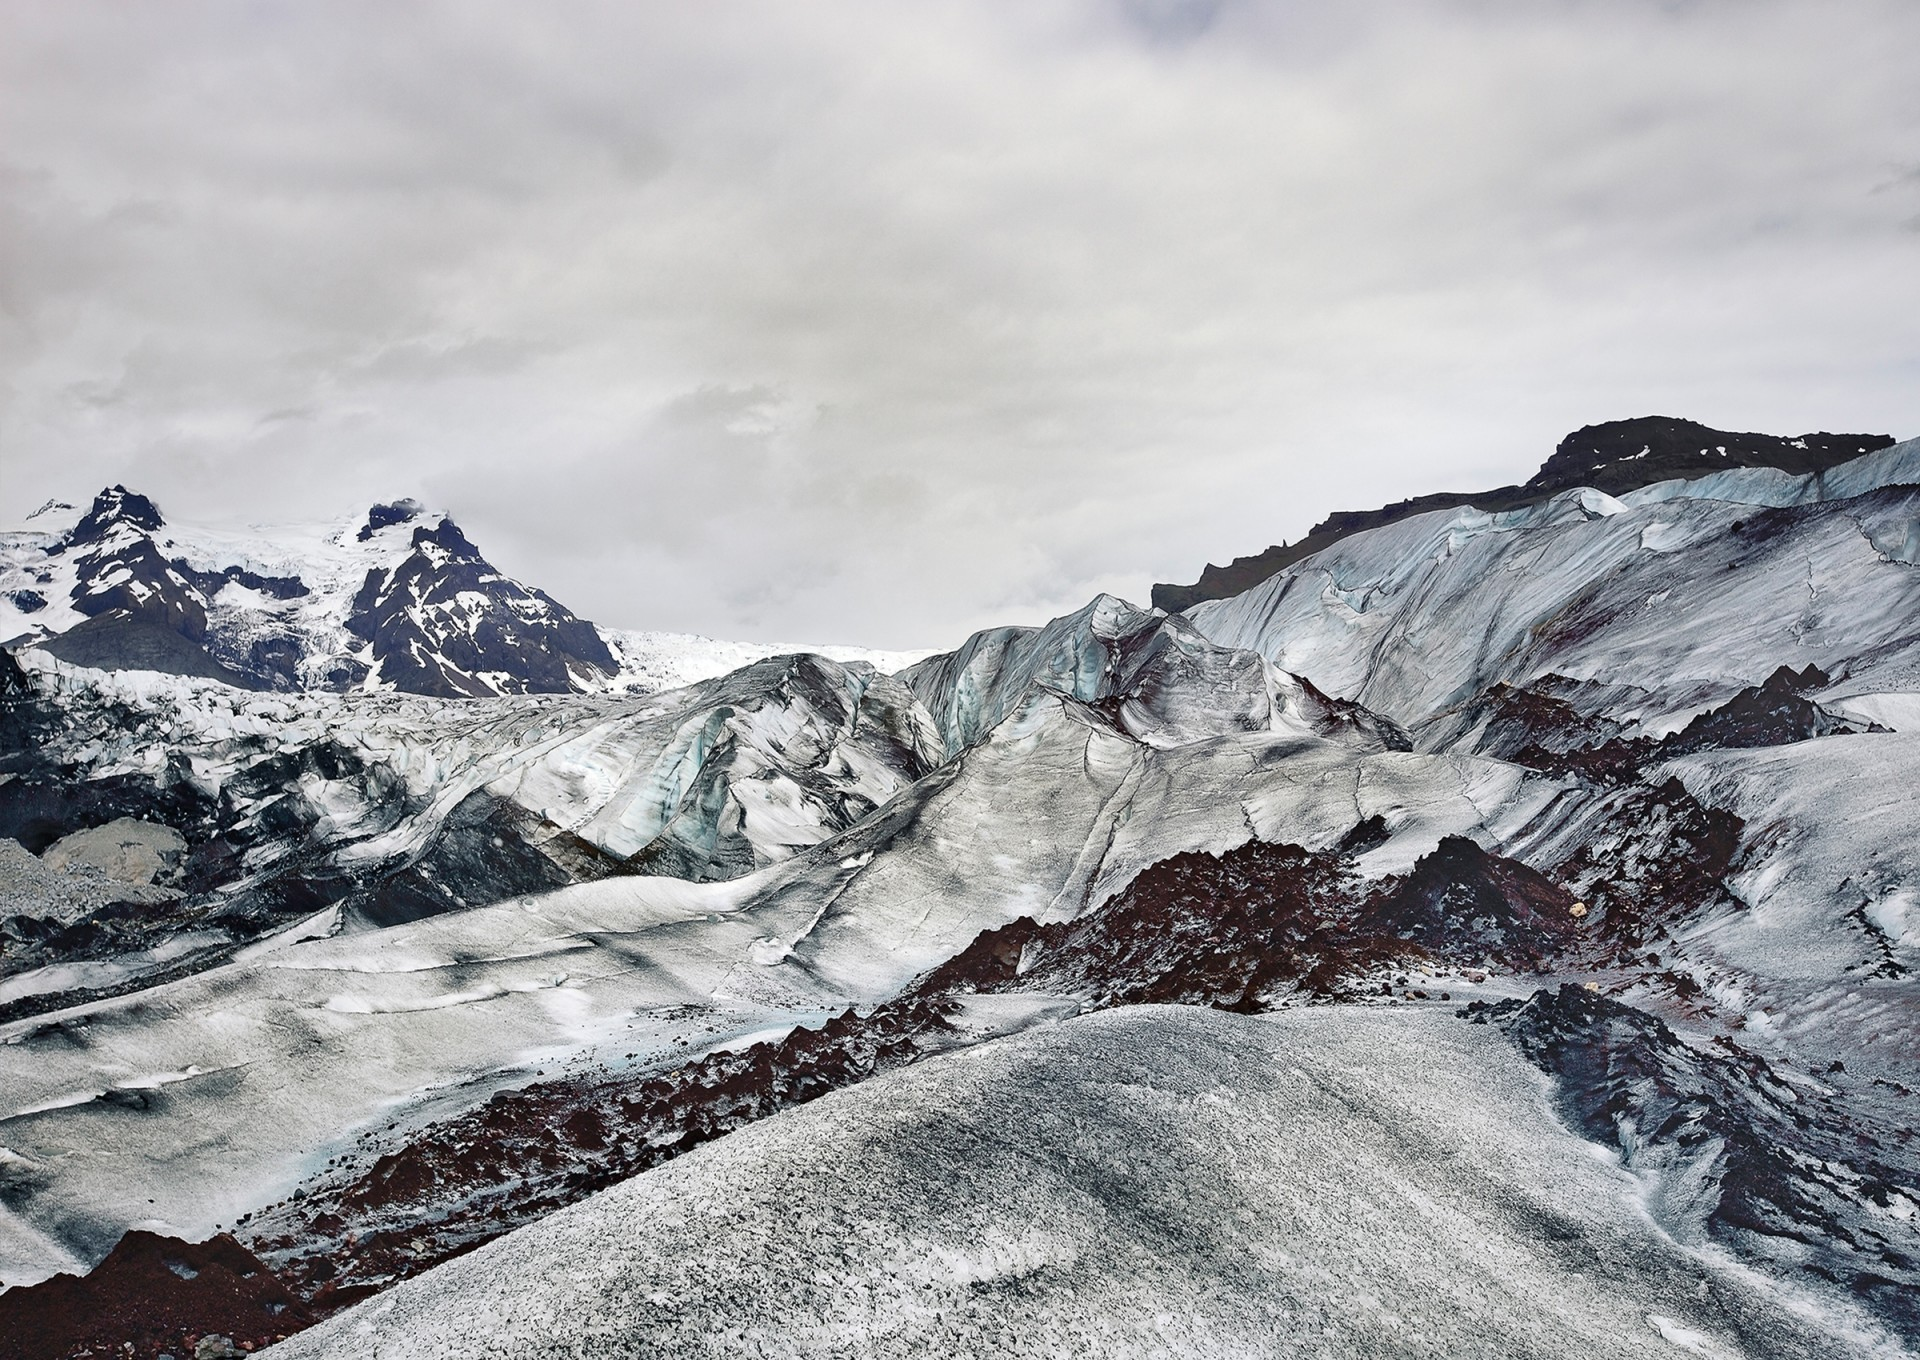 MIKA MIKA PHOTOGRAPHY TRAVEL – On the Glacier